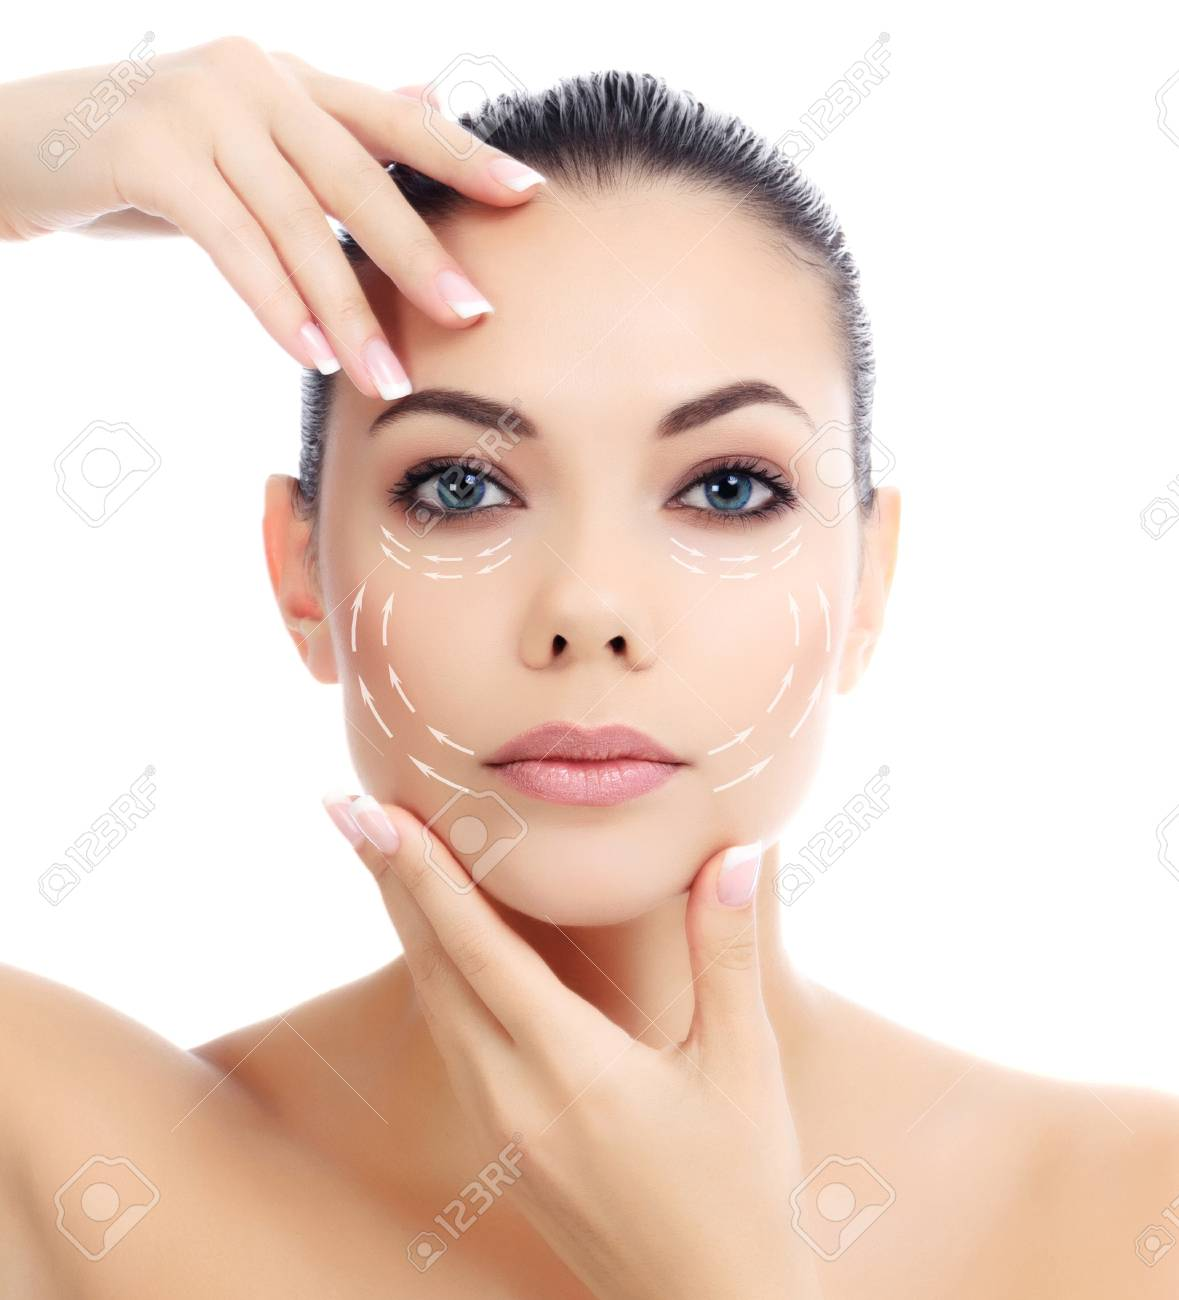 Young female with clean fresh skin, white background - 28294728